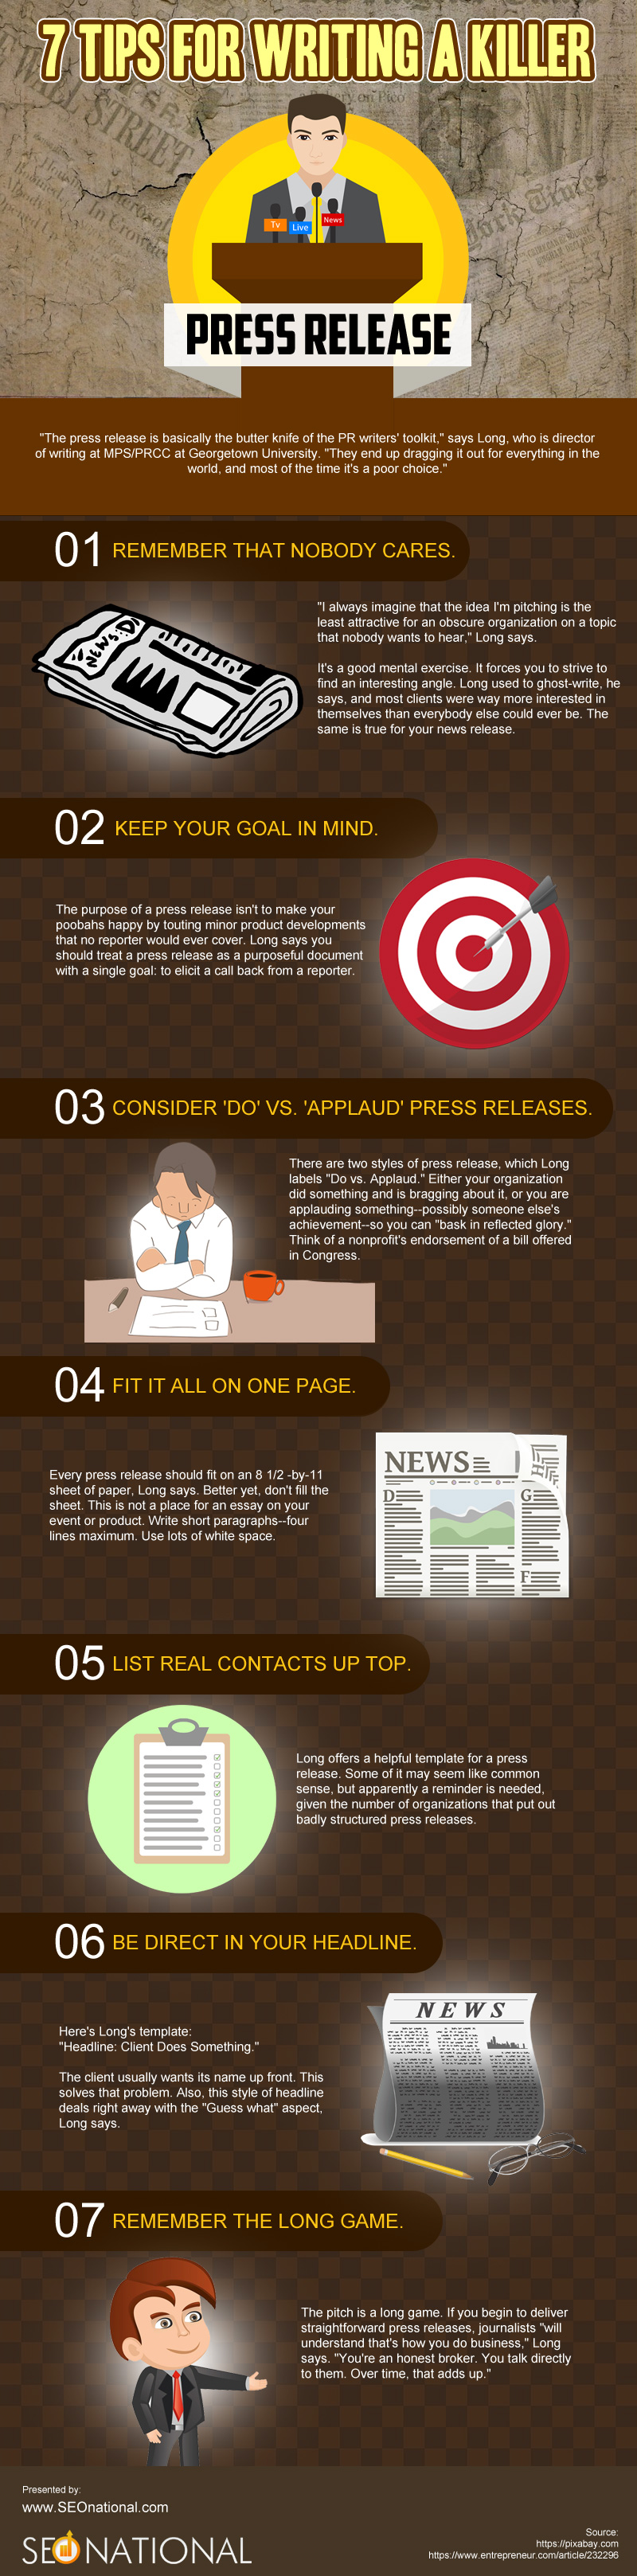 7 Tips for Writing a Killer Press Release [infographic]